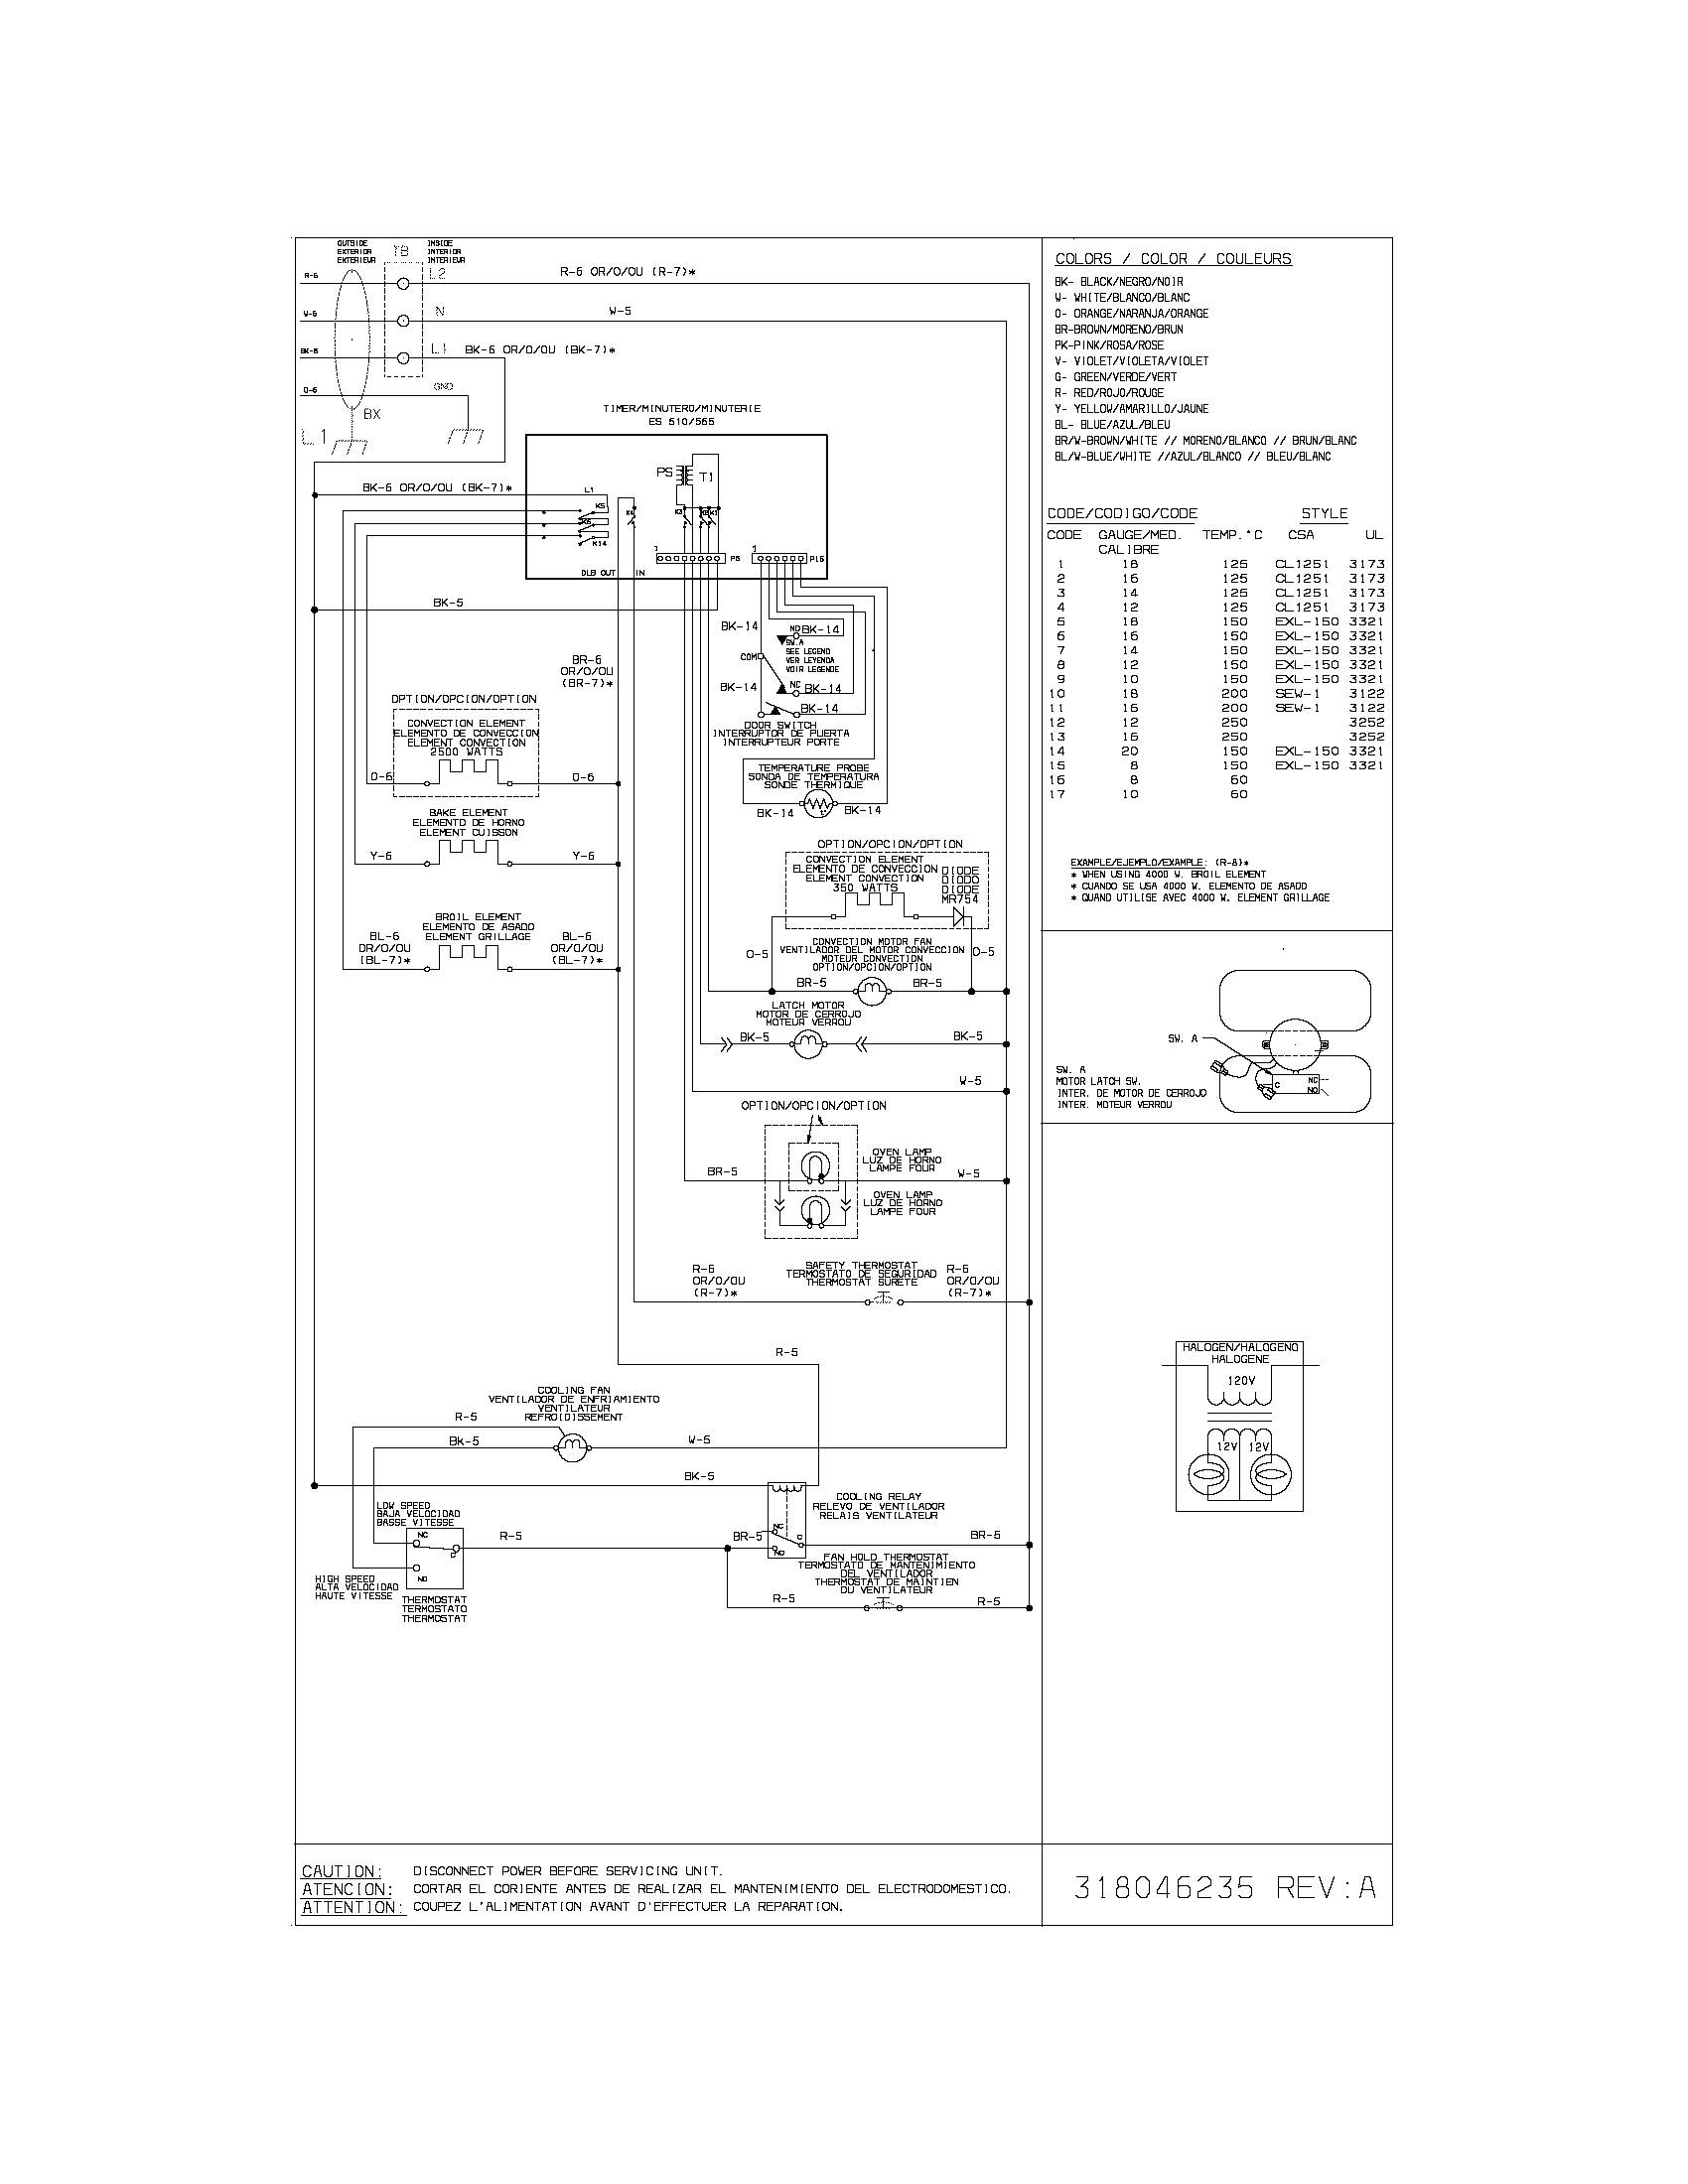 wiring diagram parts frigidaire cpeb30s8cc2 wall oven timer stove clocks and on how to wire a wall oven diagram